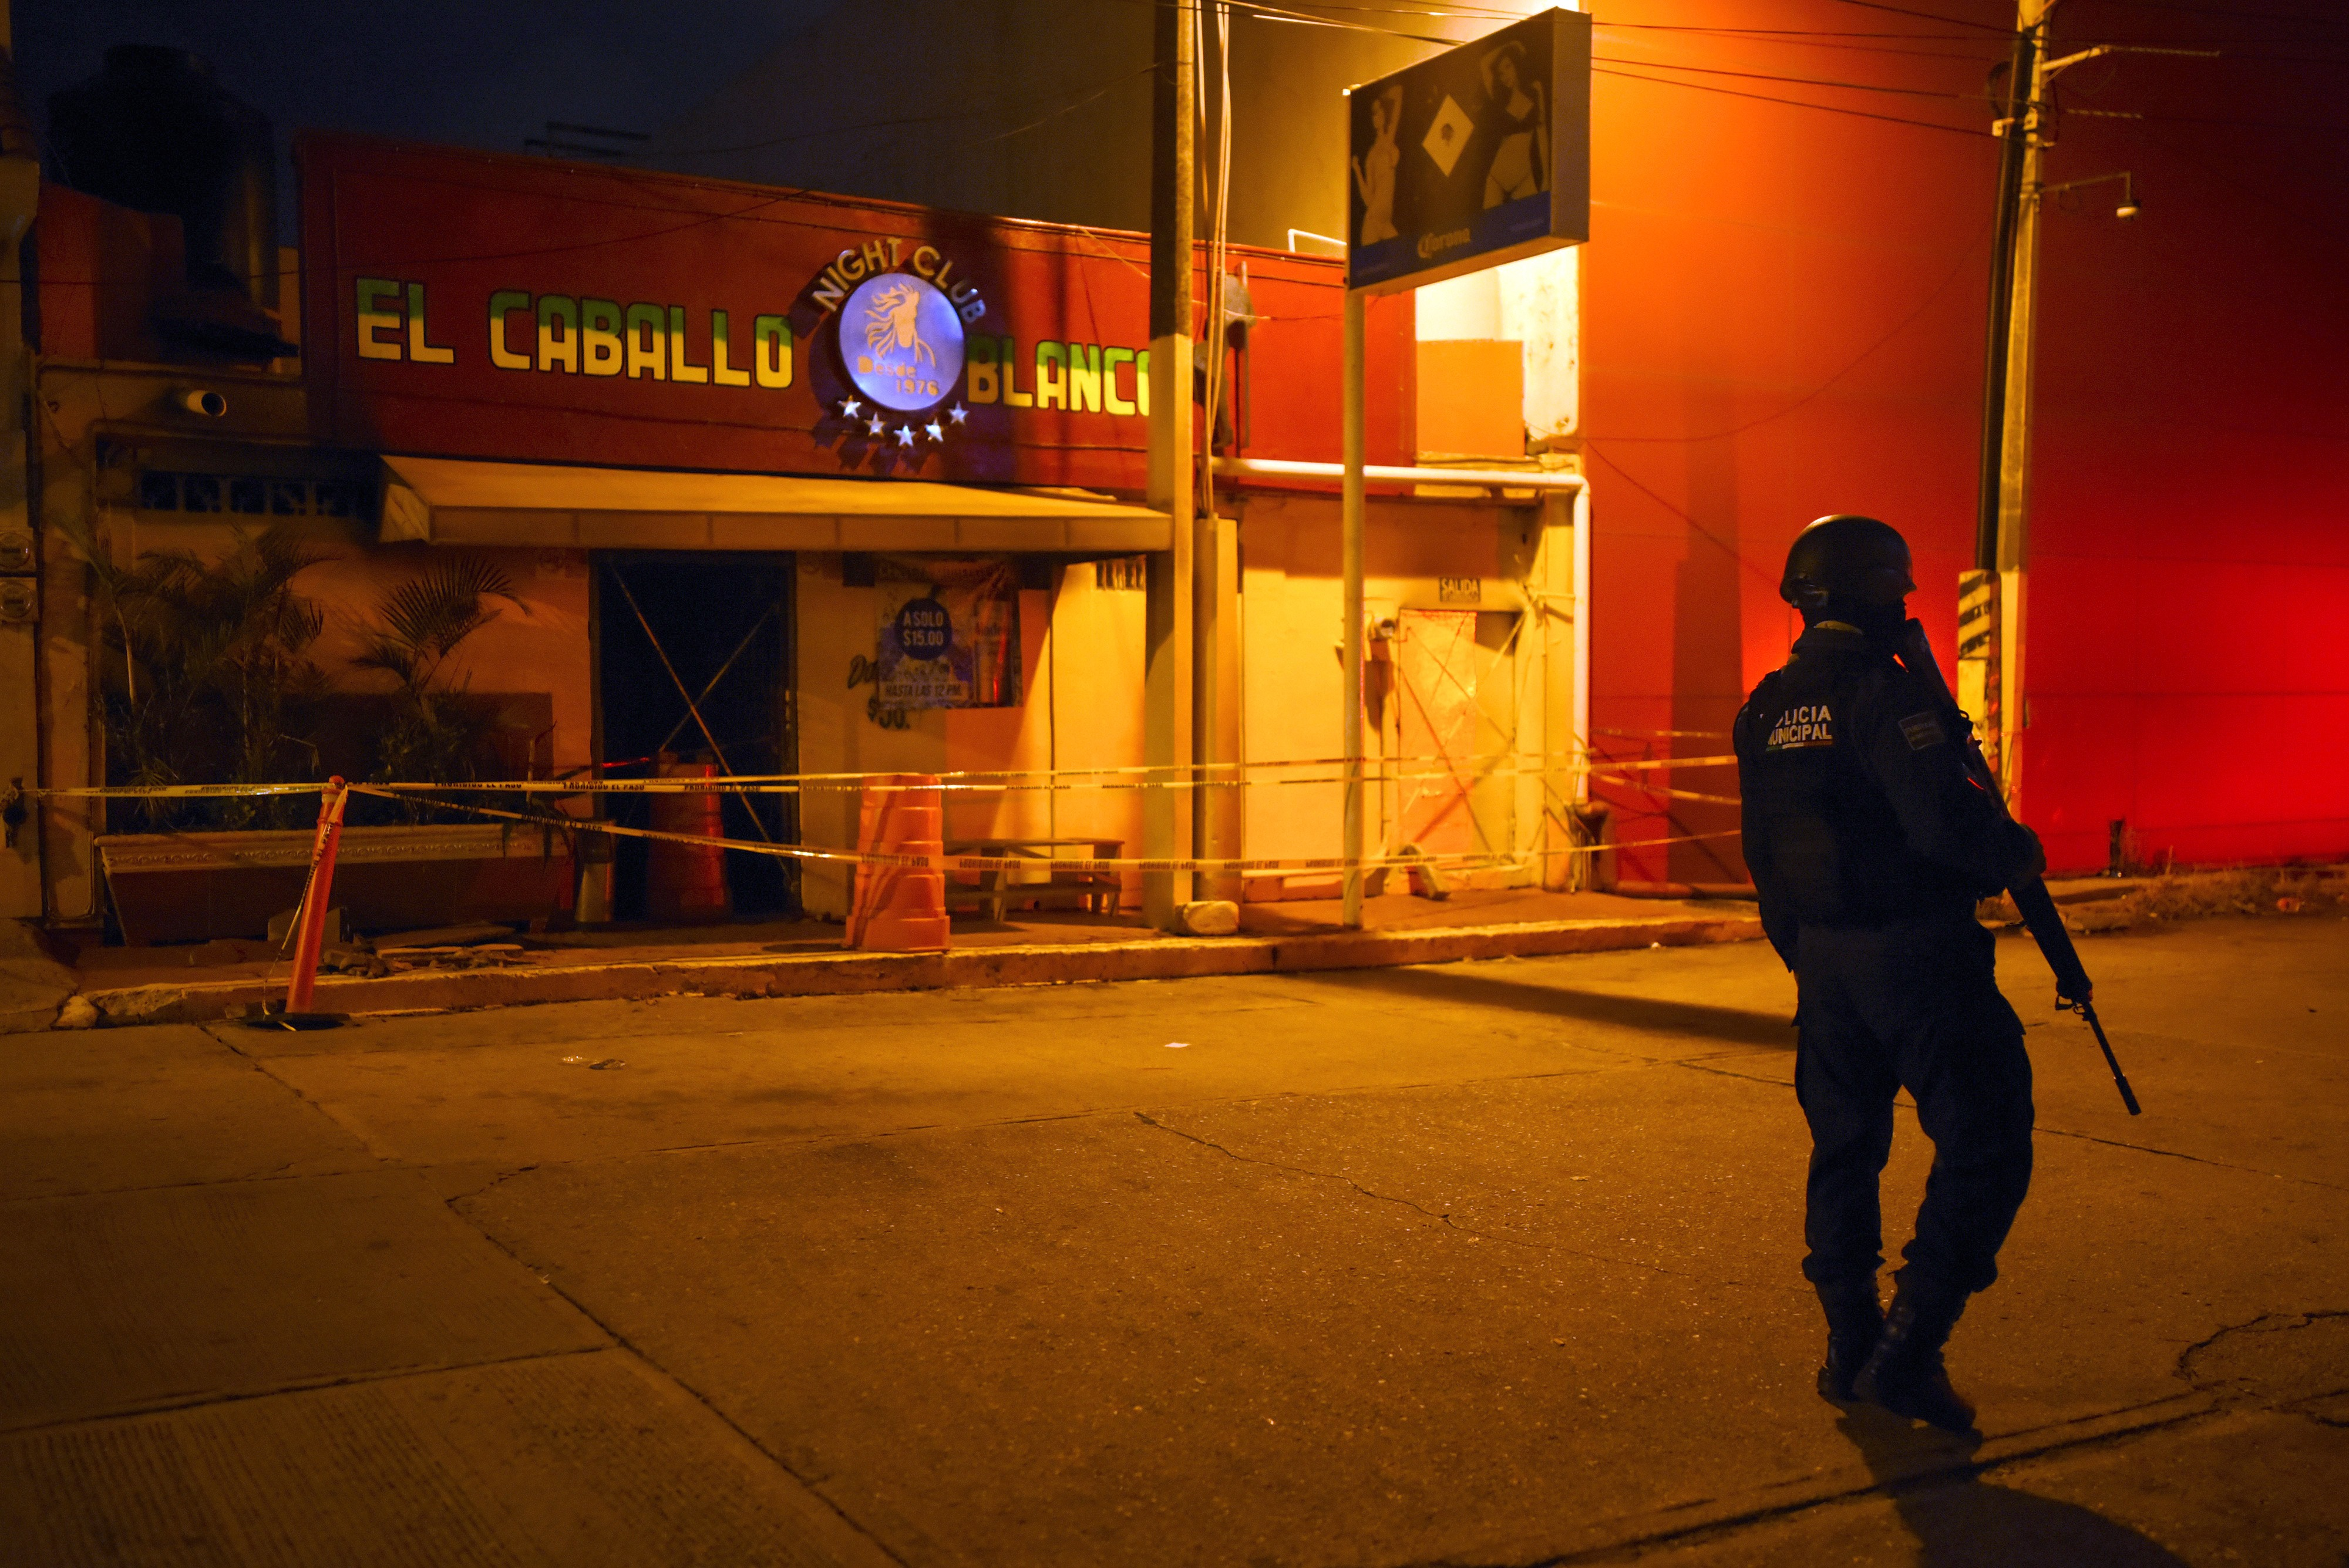 A police officer stands guard outside Caballo Blanco bar (White Horse bar) where 25 people were killed by a fire in Coatzacoalcos, Veracruz State, Mexico, on August 28, 2019. - At least 25 people were killed and 13 badly wounded in a fire which broke out Tuesday night at the bar as is being investigated as an attack, authorities said Wednesday. The state of Veracruz is a flashpoint in the bloody turf wars between Mexico's rival drug cartels. (Photo by VICTORIA RAZO / AFP) (Photo credit should read VICTORIA RAZO/AFP/Getty Images)